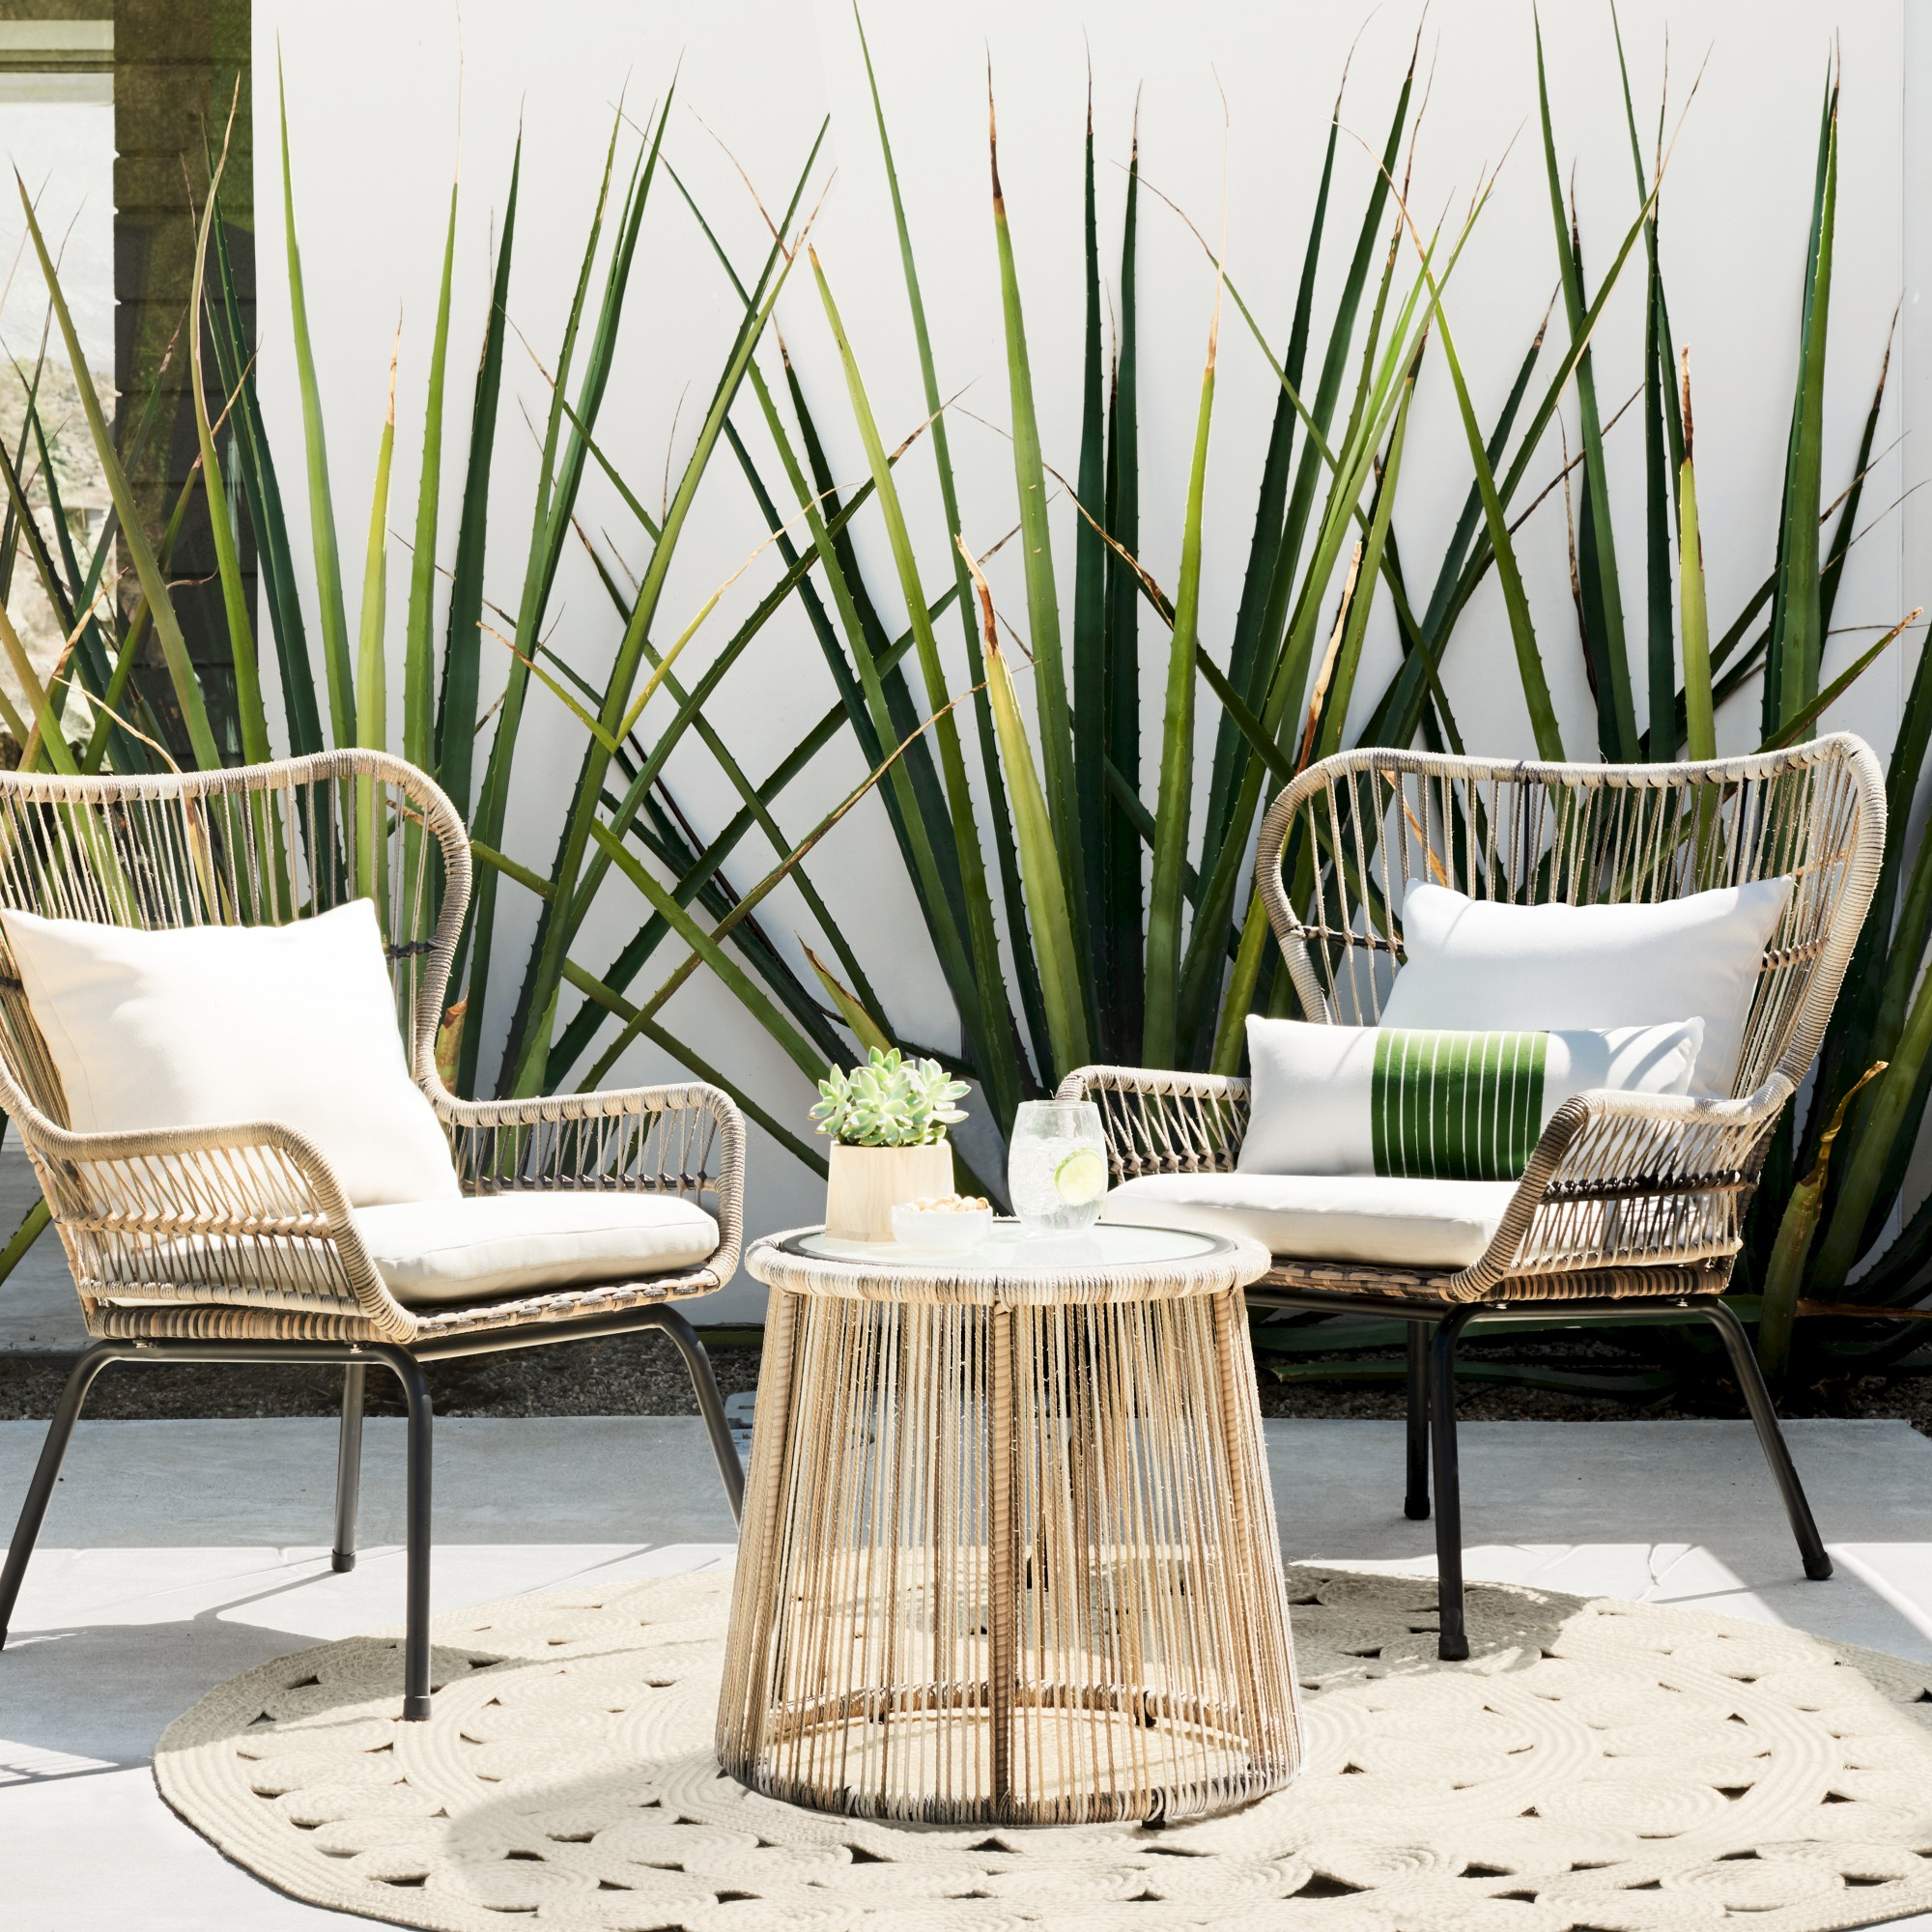 Latigo 3Pc All Weather Wicker Outdoor Patio Chat Set – Tan Intended For Well Known Modern Home Wailea Woven Rattan Loungers (Gallery 4 of 25)